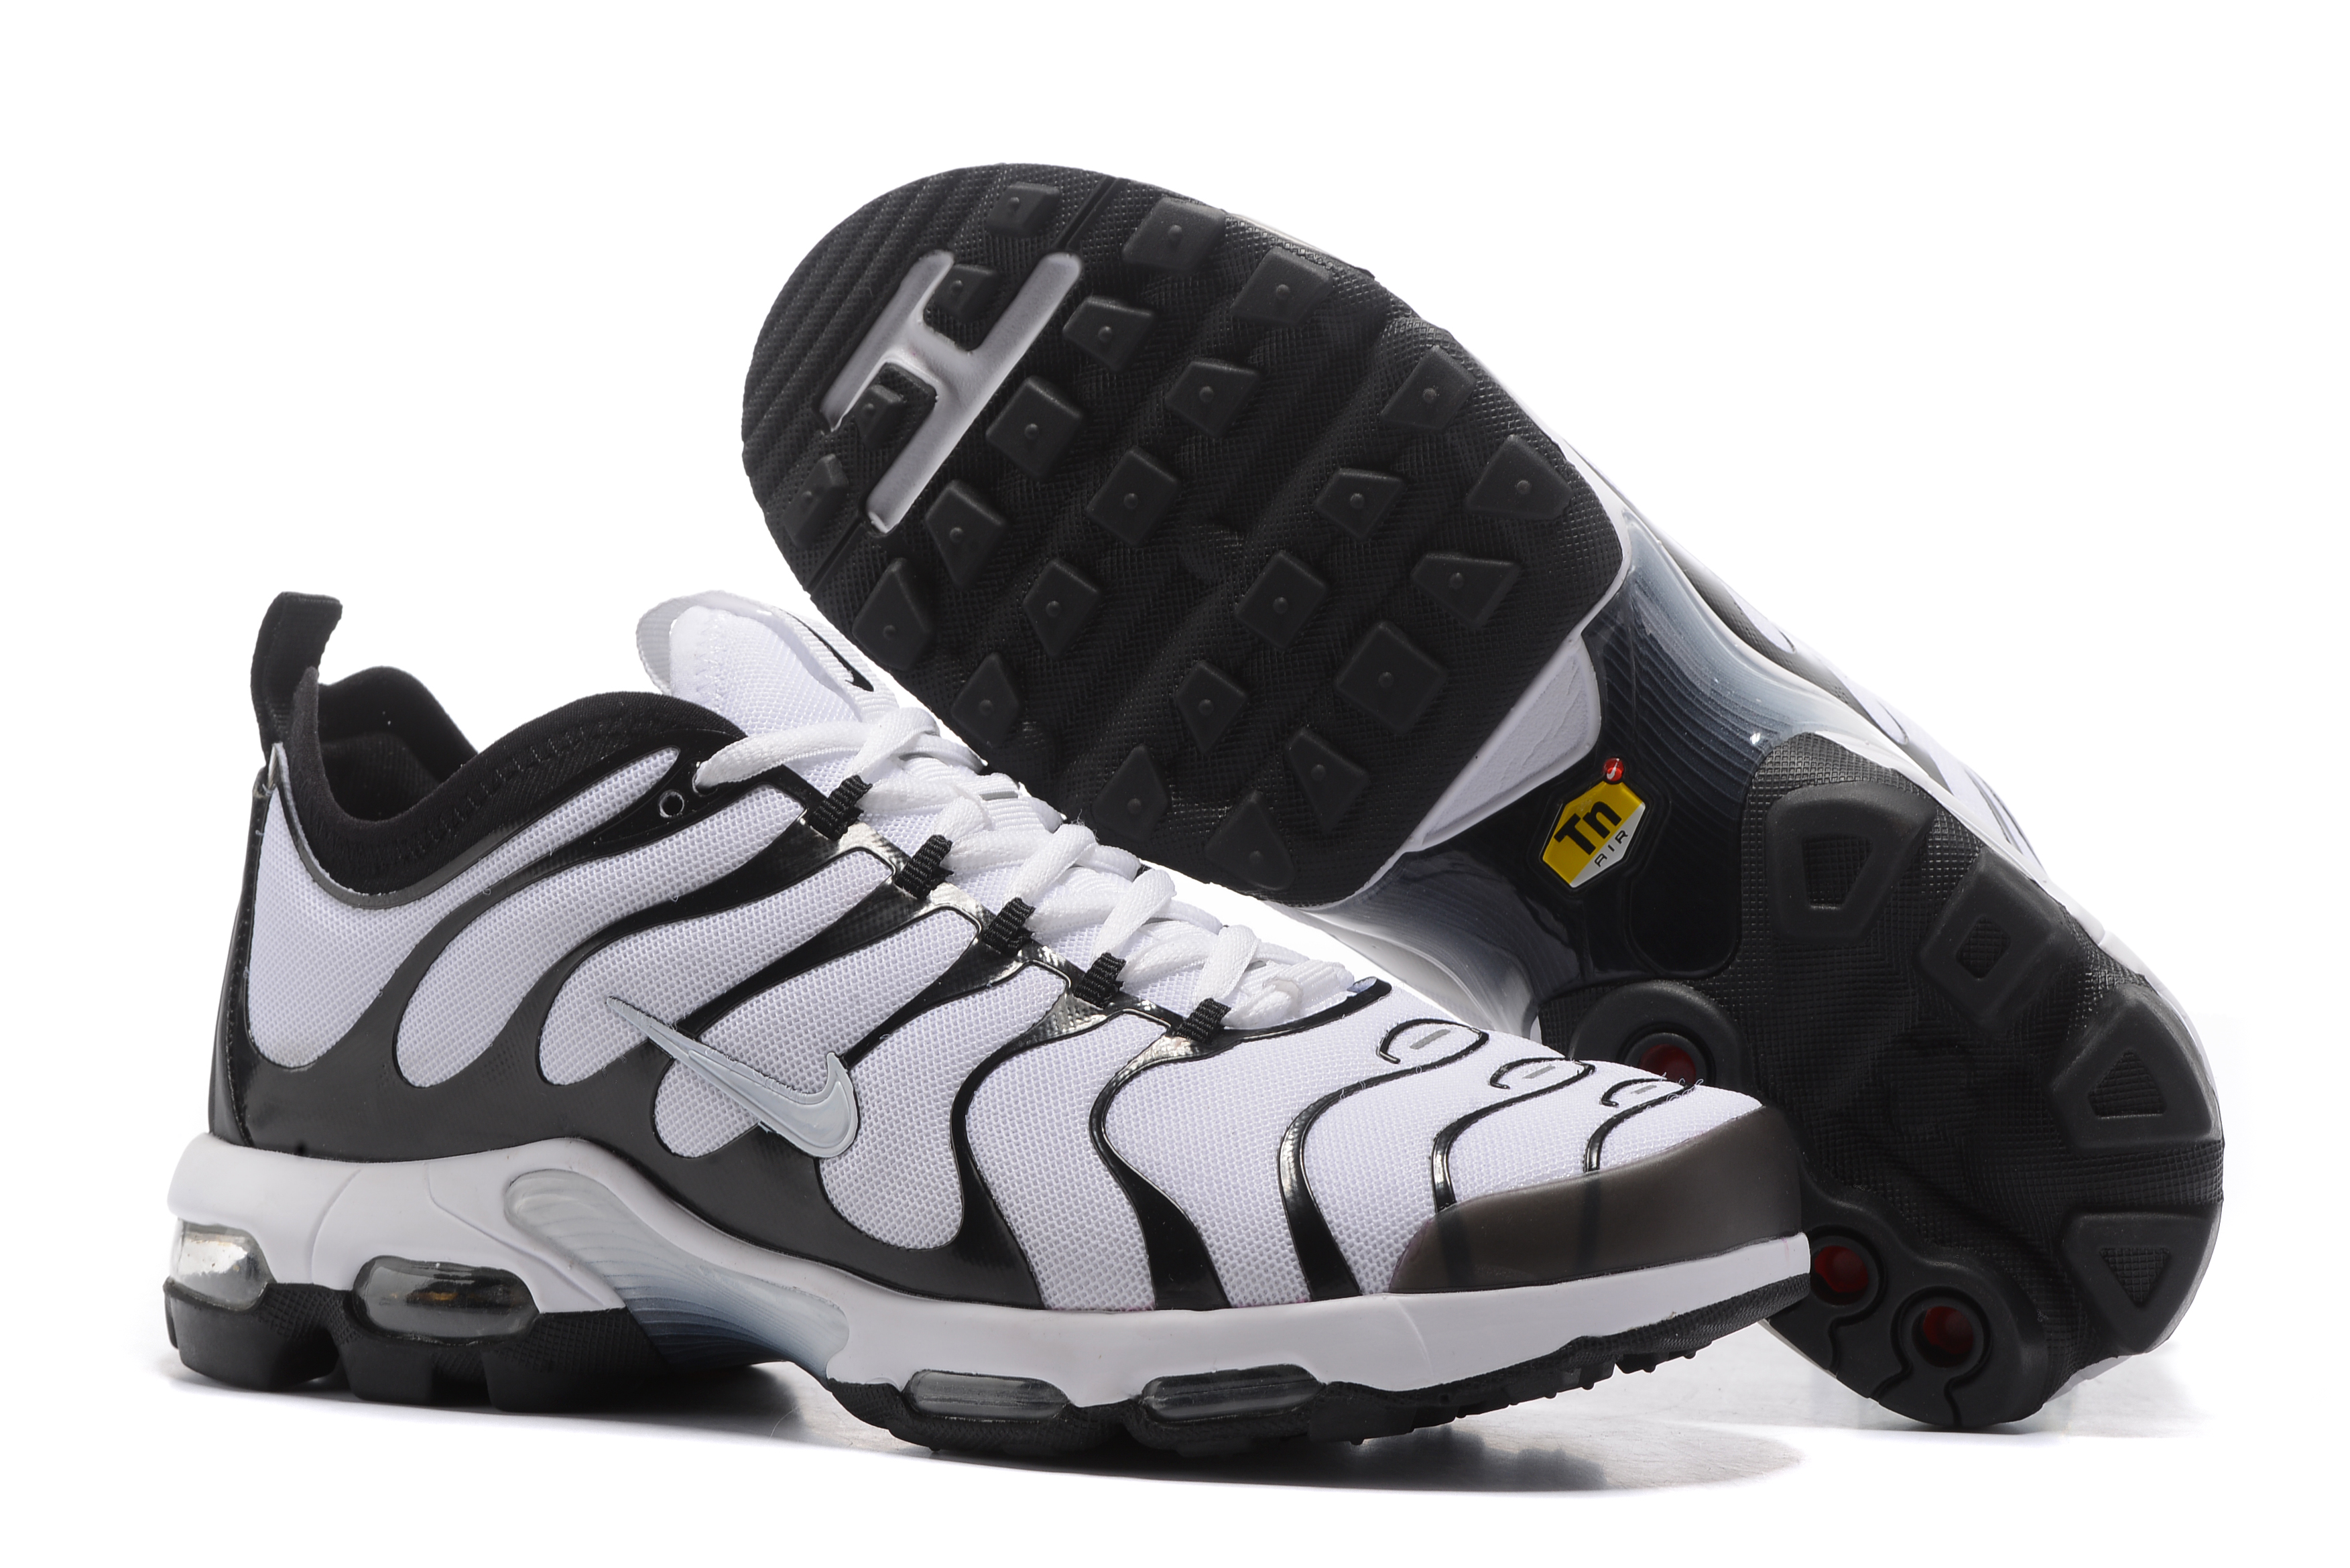 Nike Air Max Plus TN White Black Shoes